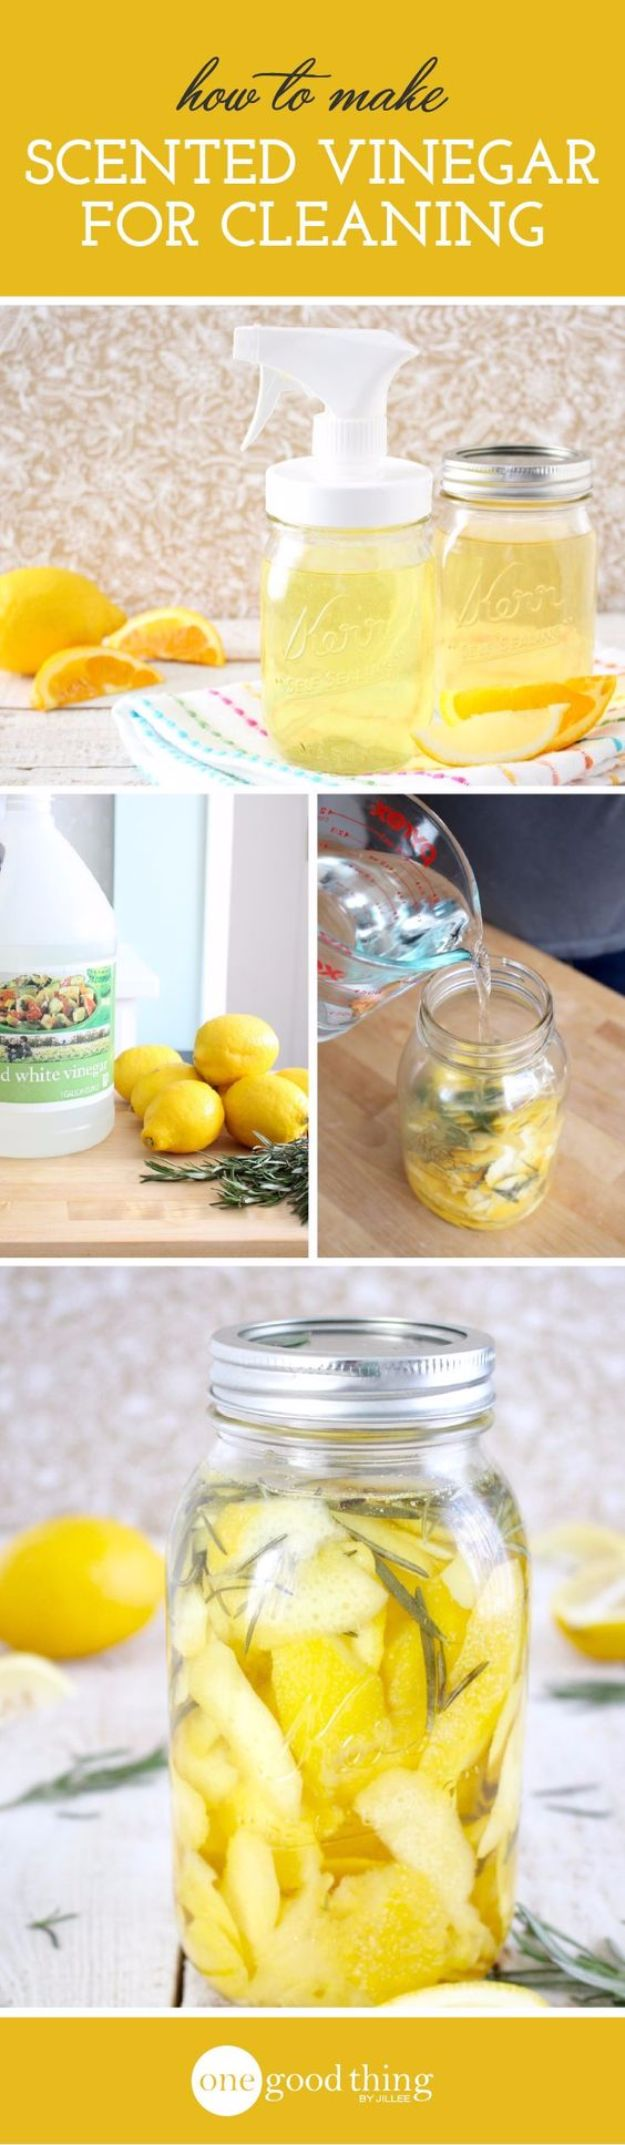 Cleaning Tips and Tricks - Make Your Own Scented Cleaning Vinegar - Best Cleaning Hacks, Recipes and Tutorials - Daily Ways to Clean For Kitchen, For Couches, Bathroom, Bedroom, Laundry, Floors, Furniture, Windows, Cleaners and More for Cleaning Your Home- Quick Ideas for Lazy People - Cool Cleaning Hack Tutorial - DIY Projects and Crafts by DIY JOY http://diyjoy.com/diy-cleaning-tips-tricks